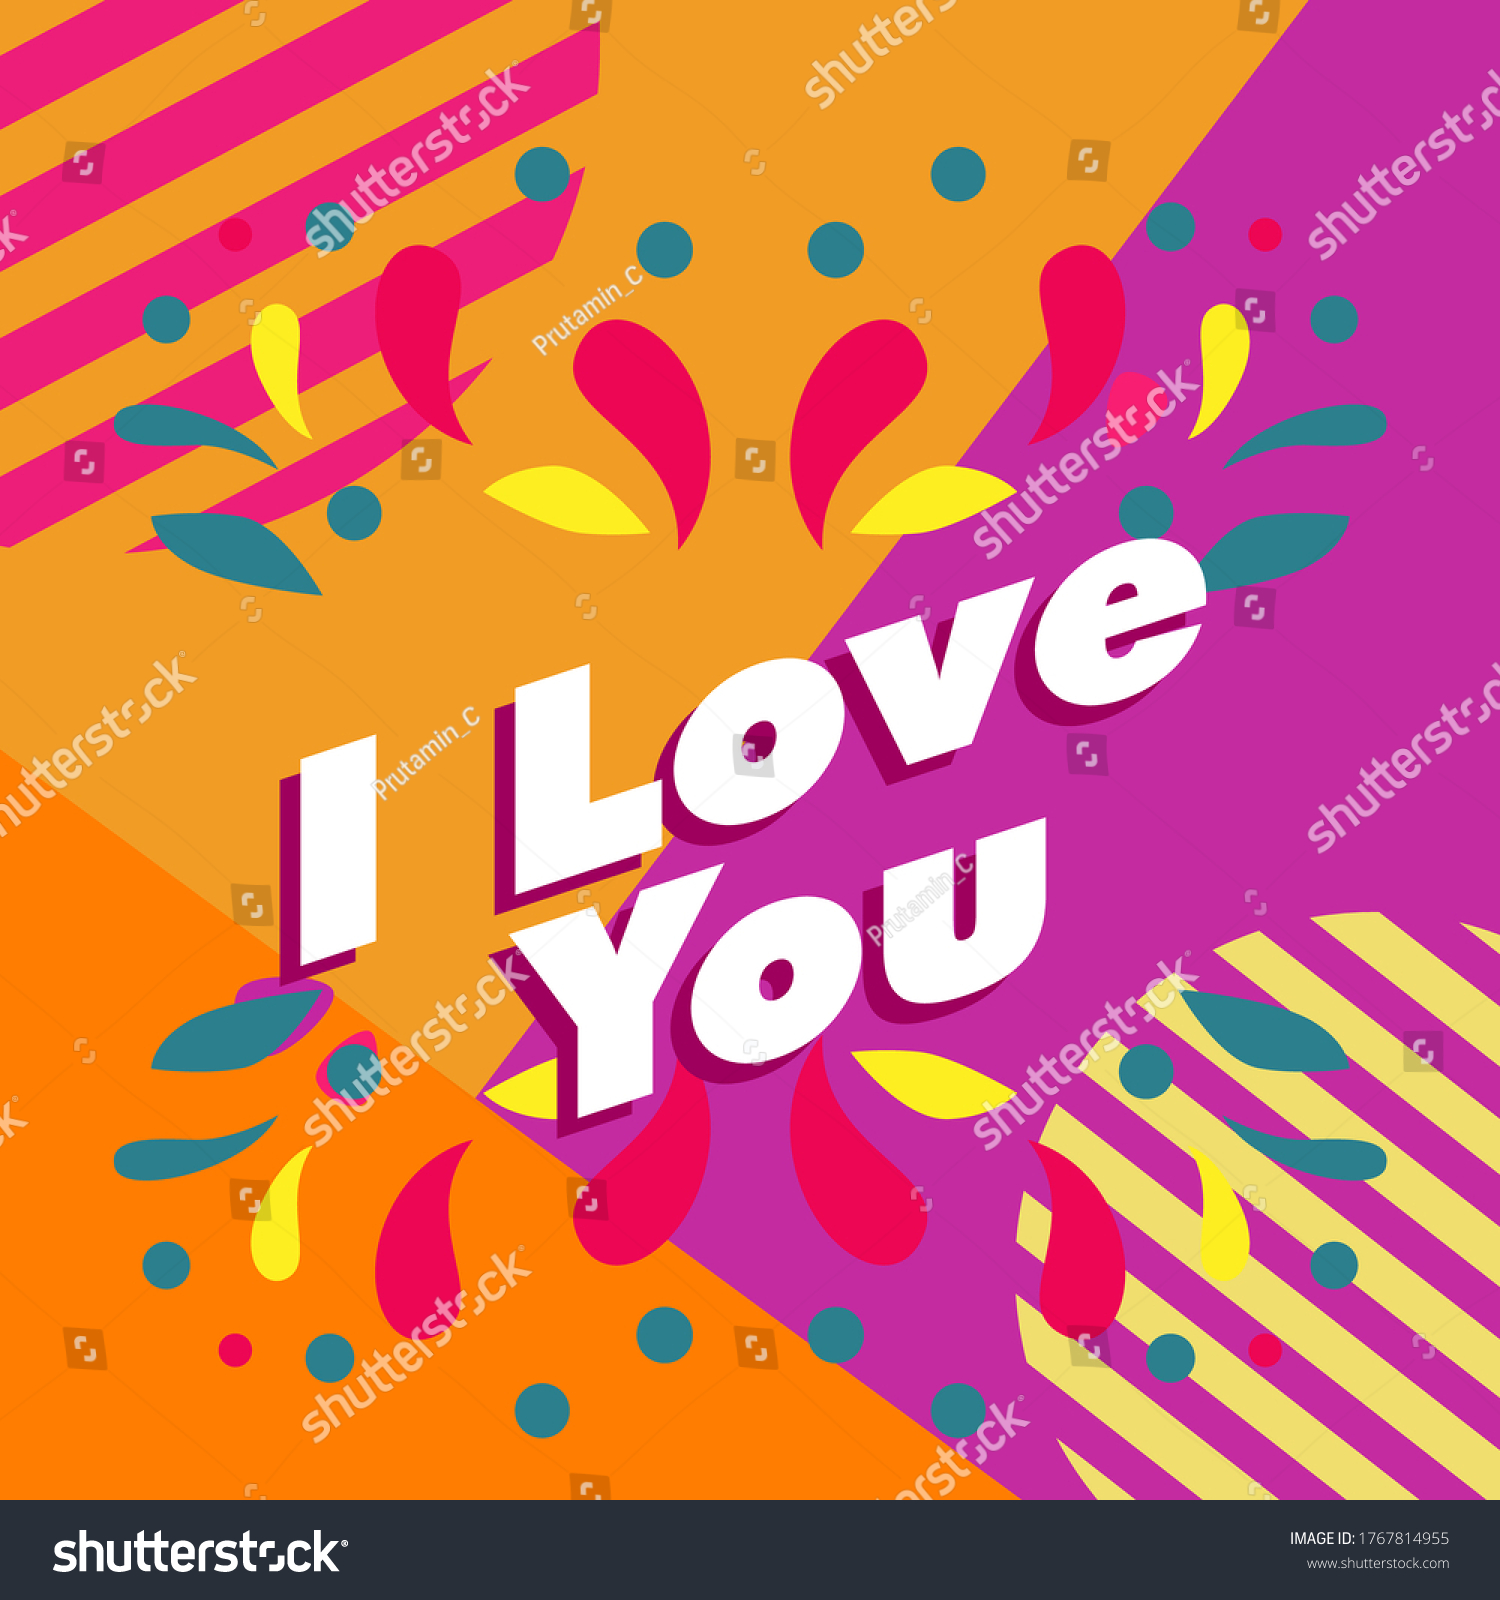 stock-vector-i-love-you-beautiful-greeti